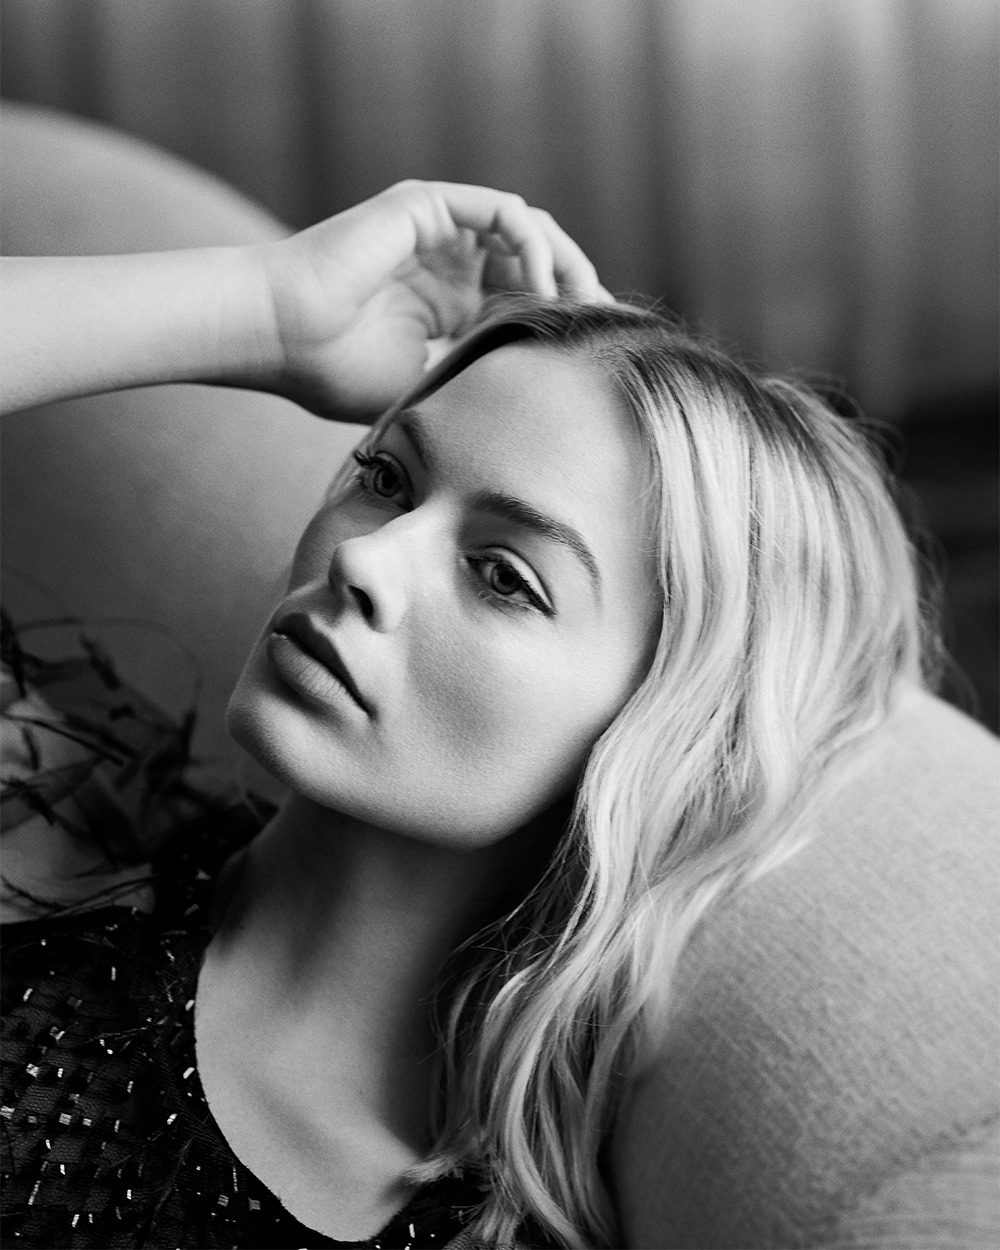 Margot Robbie for Variety Magazine January 2020